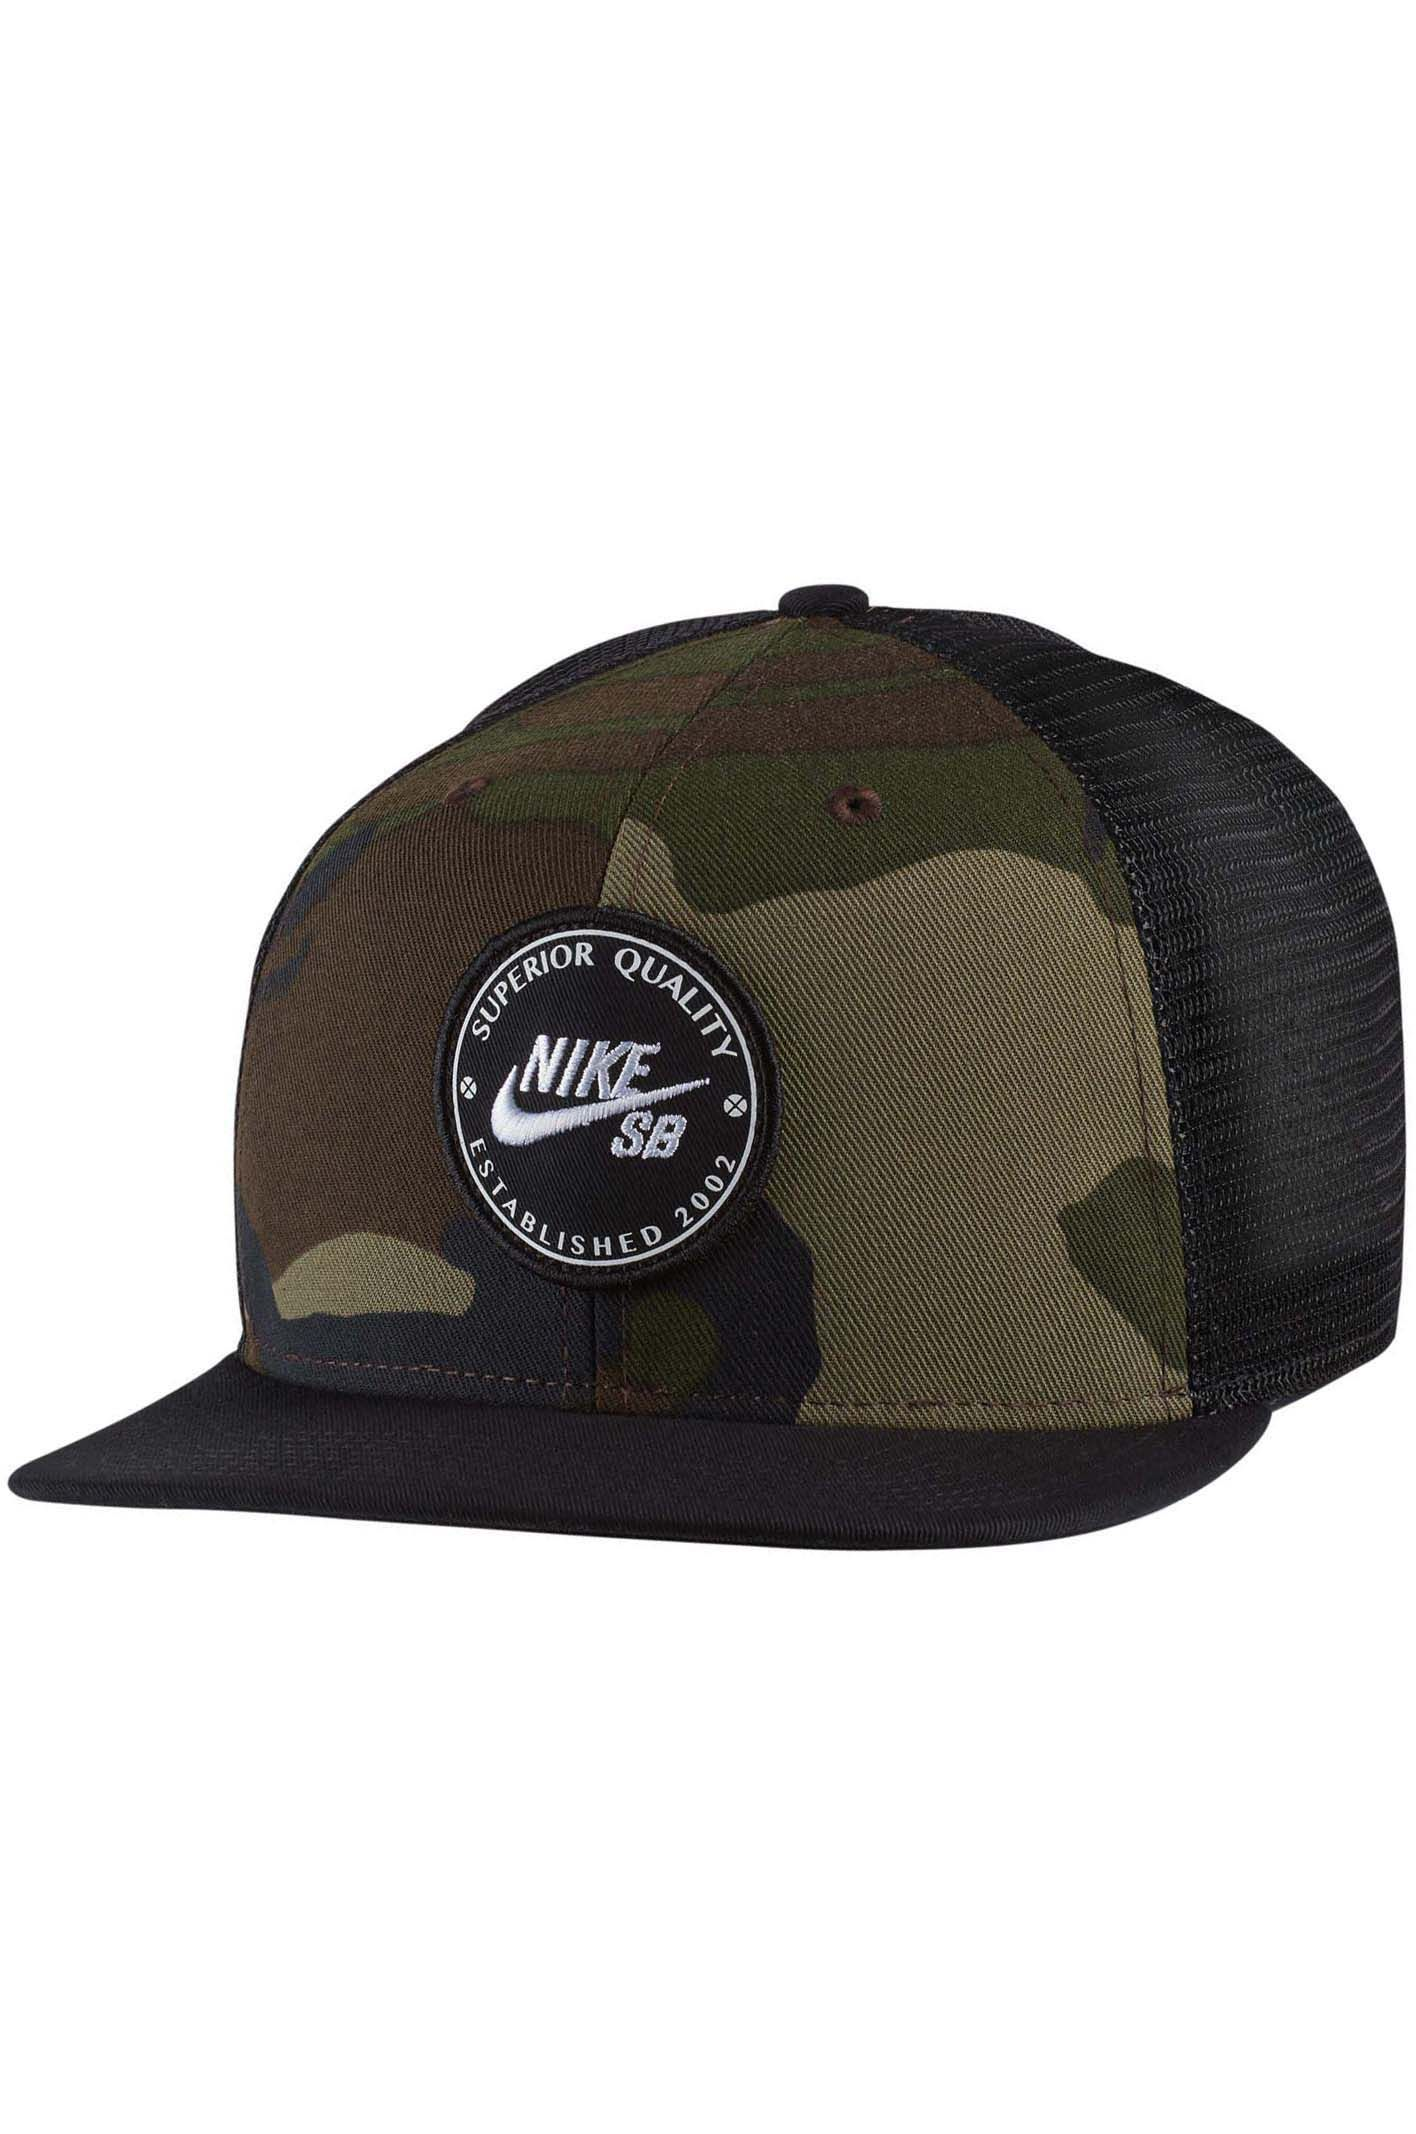 91a7eec471 Nike Sb Cap PRO PATCH TRUCKER Medium Olive/Black/Black/(Black) (Cf Camo)